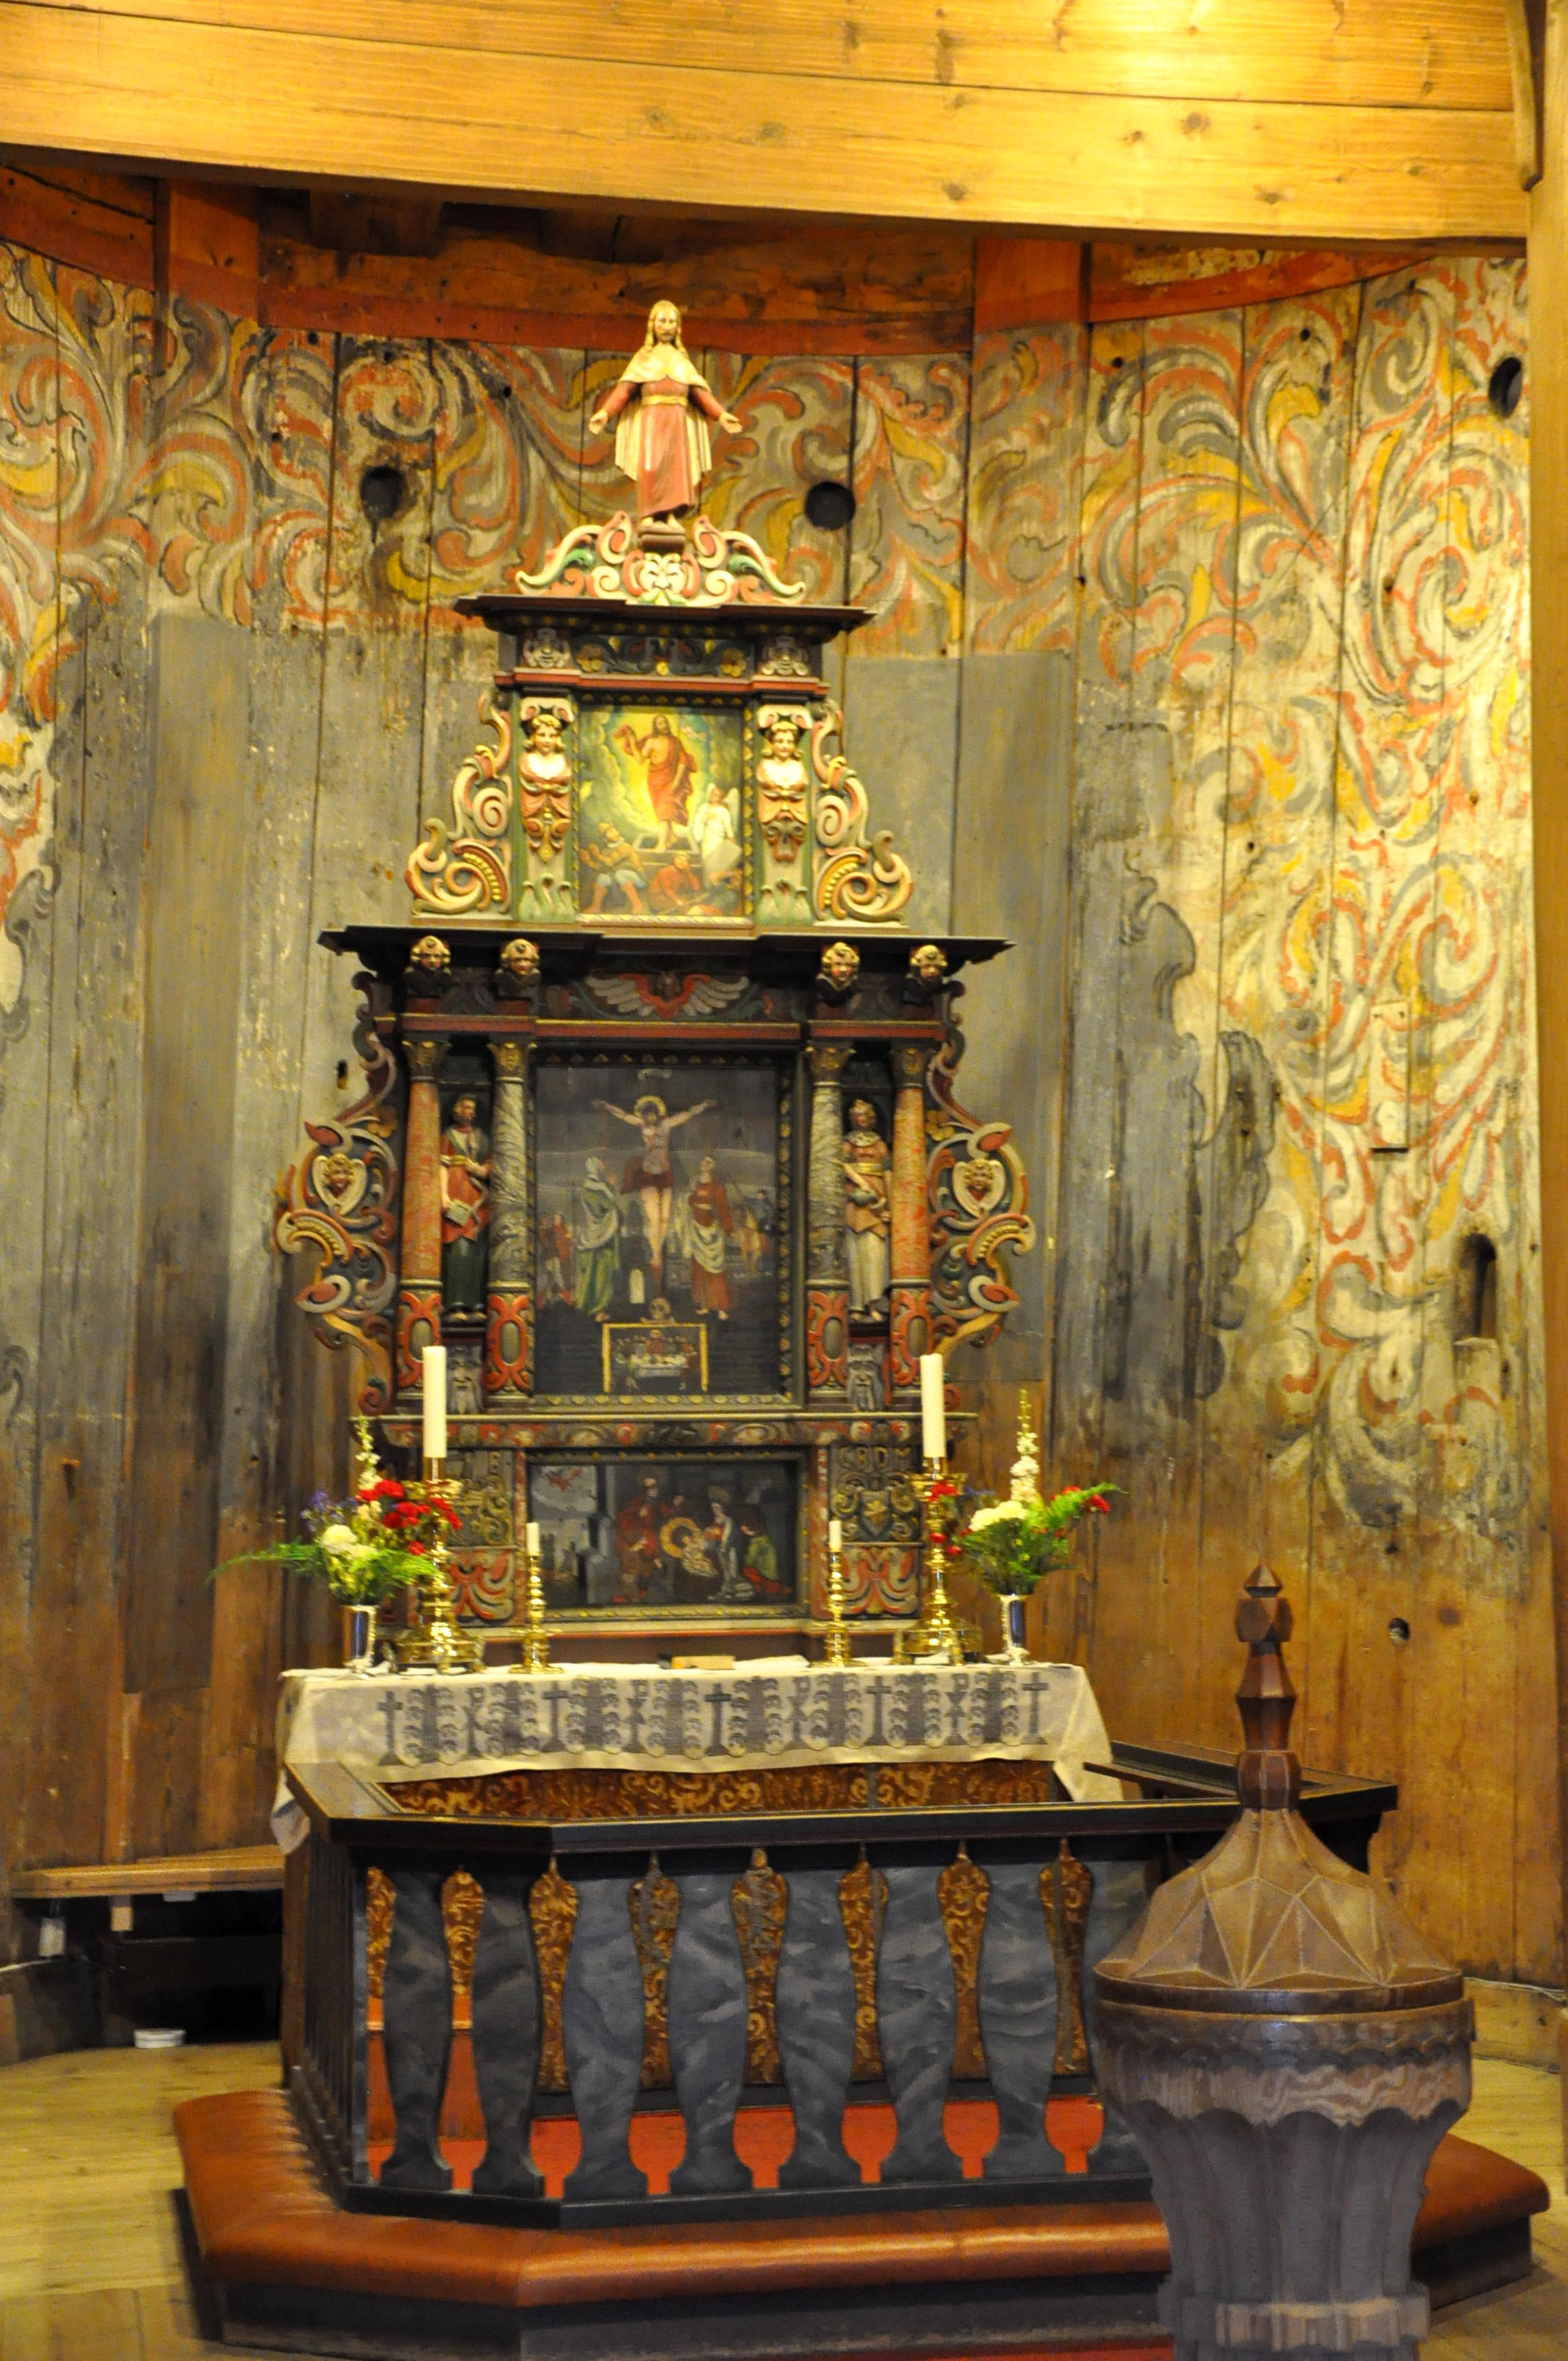 Heddal stave church - alter. | Photo: Jun Kwang Han - wikimedia - CC BY-SA.